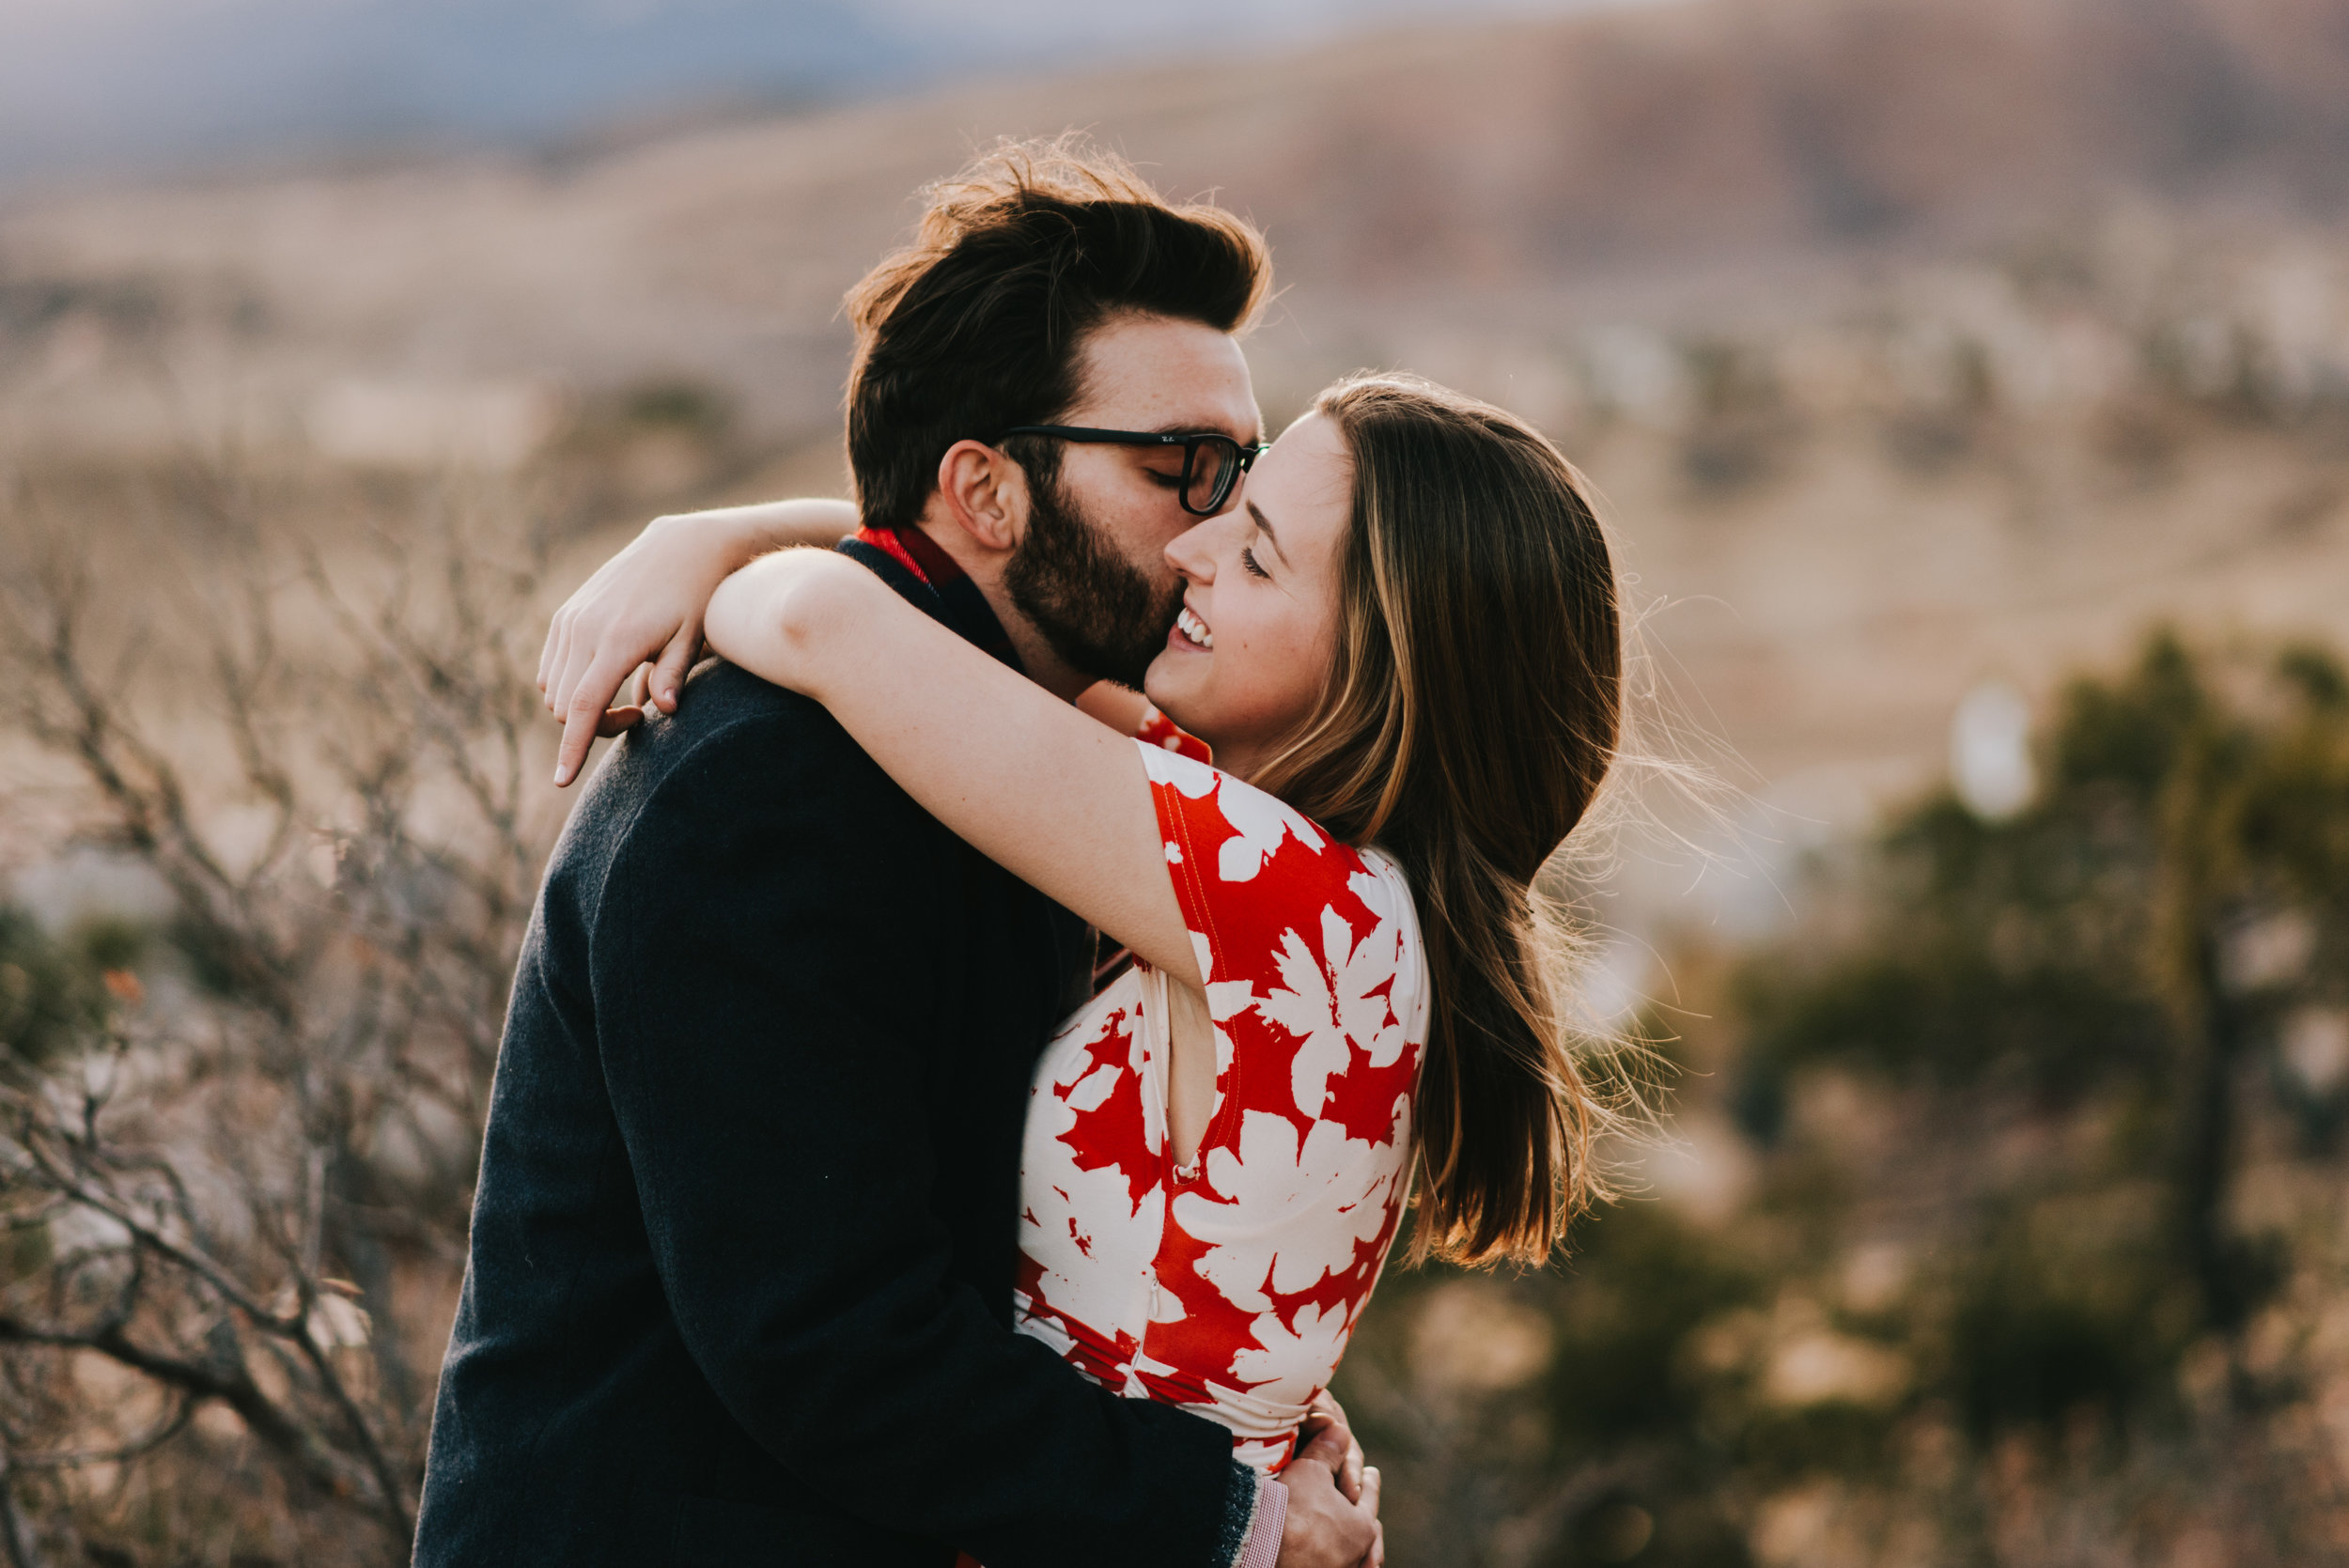 Ted kissing Rachel on the cheek during their Colorado Springs engagement session at Garden of the Gods.